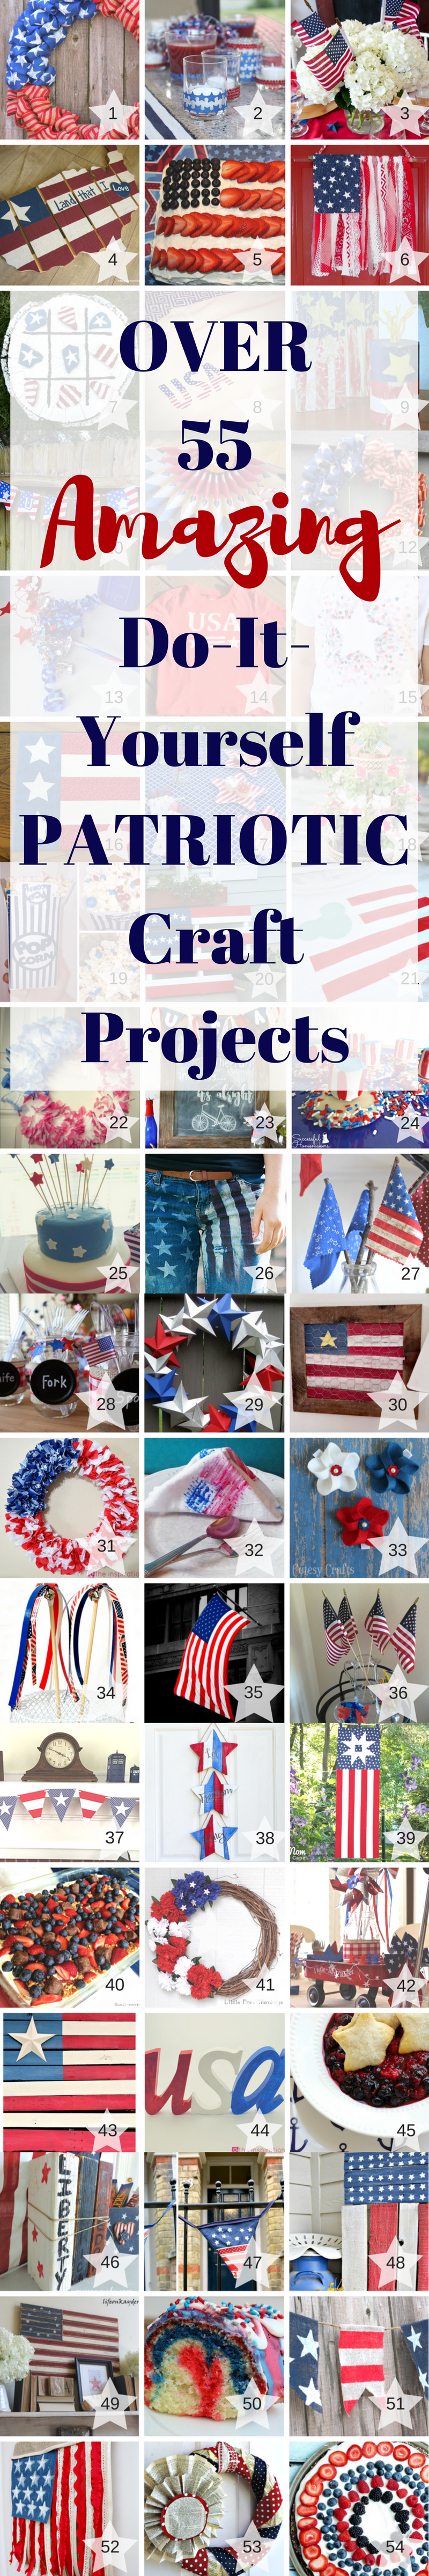 Patriotic Craft Projects